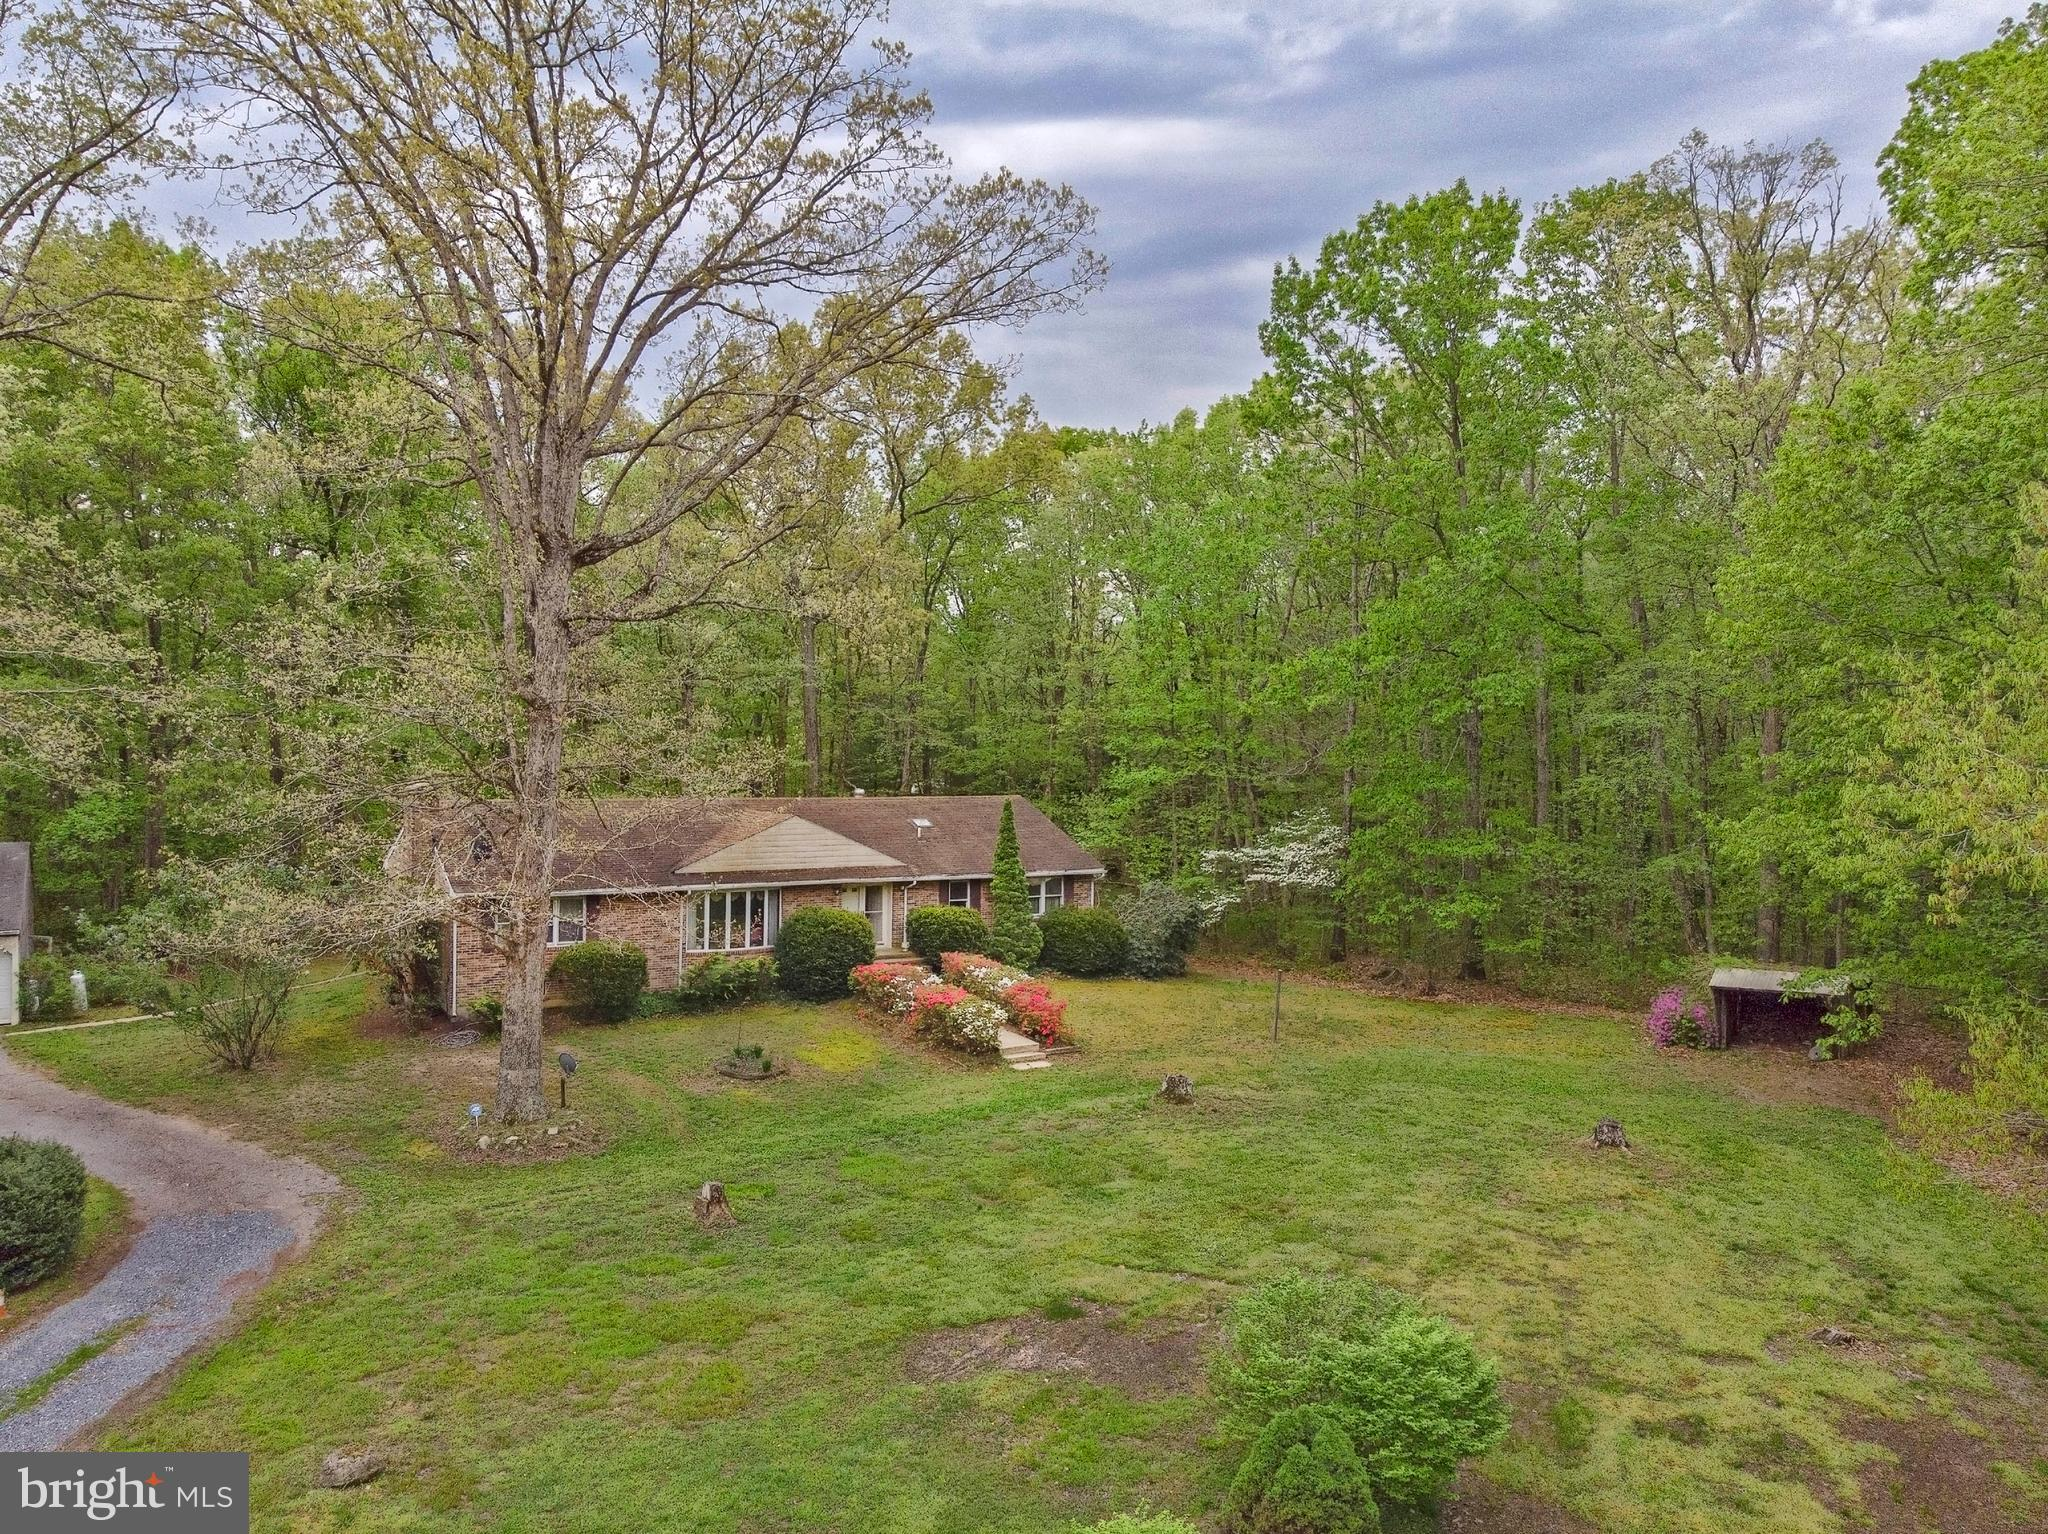 1676 HOLLETTS CORNER ROAD, CLAYTON, DE 19938